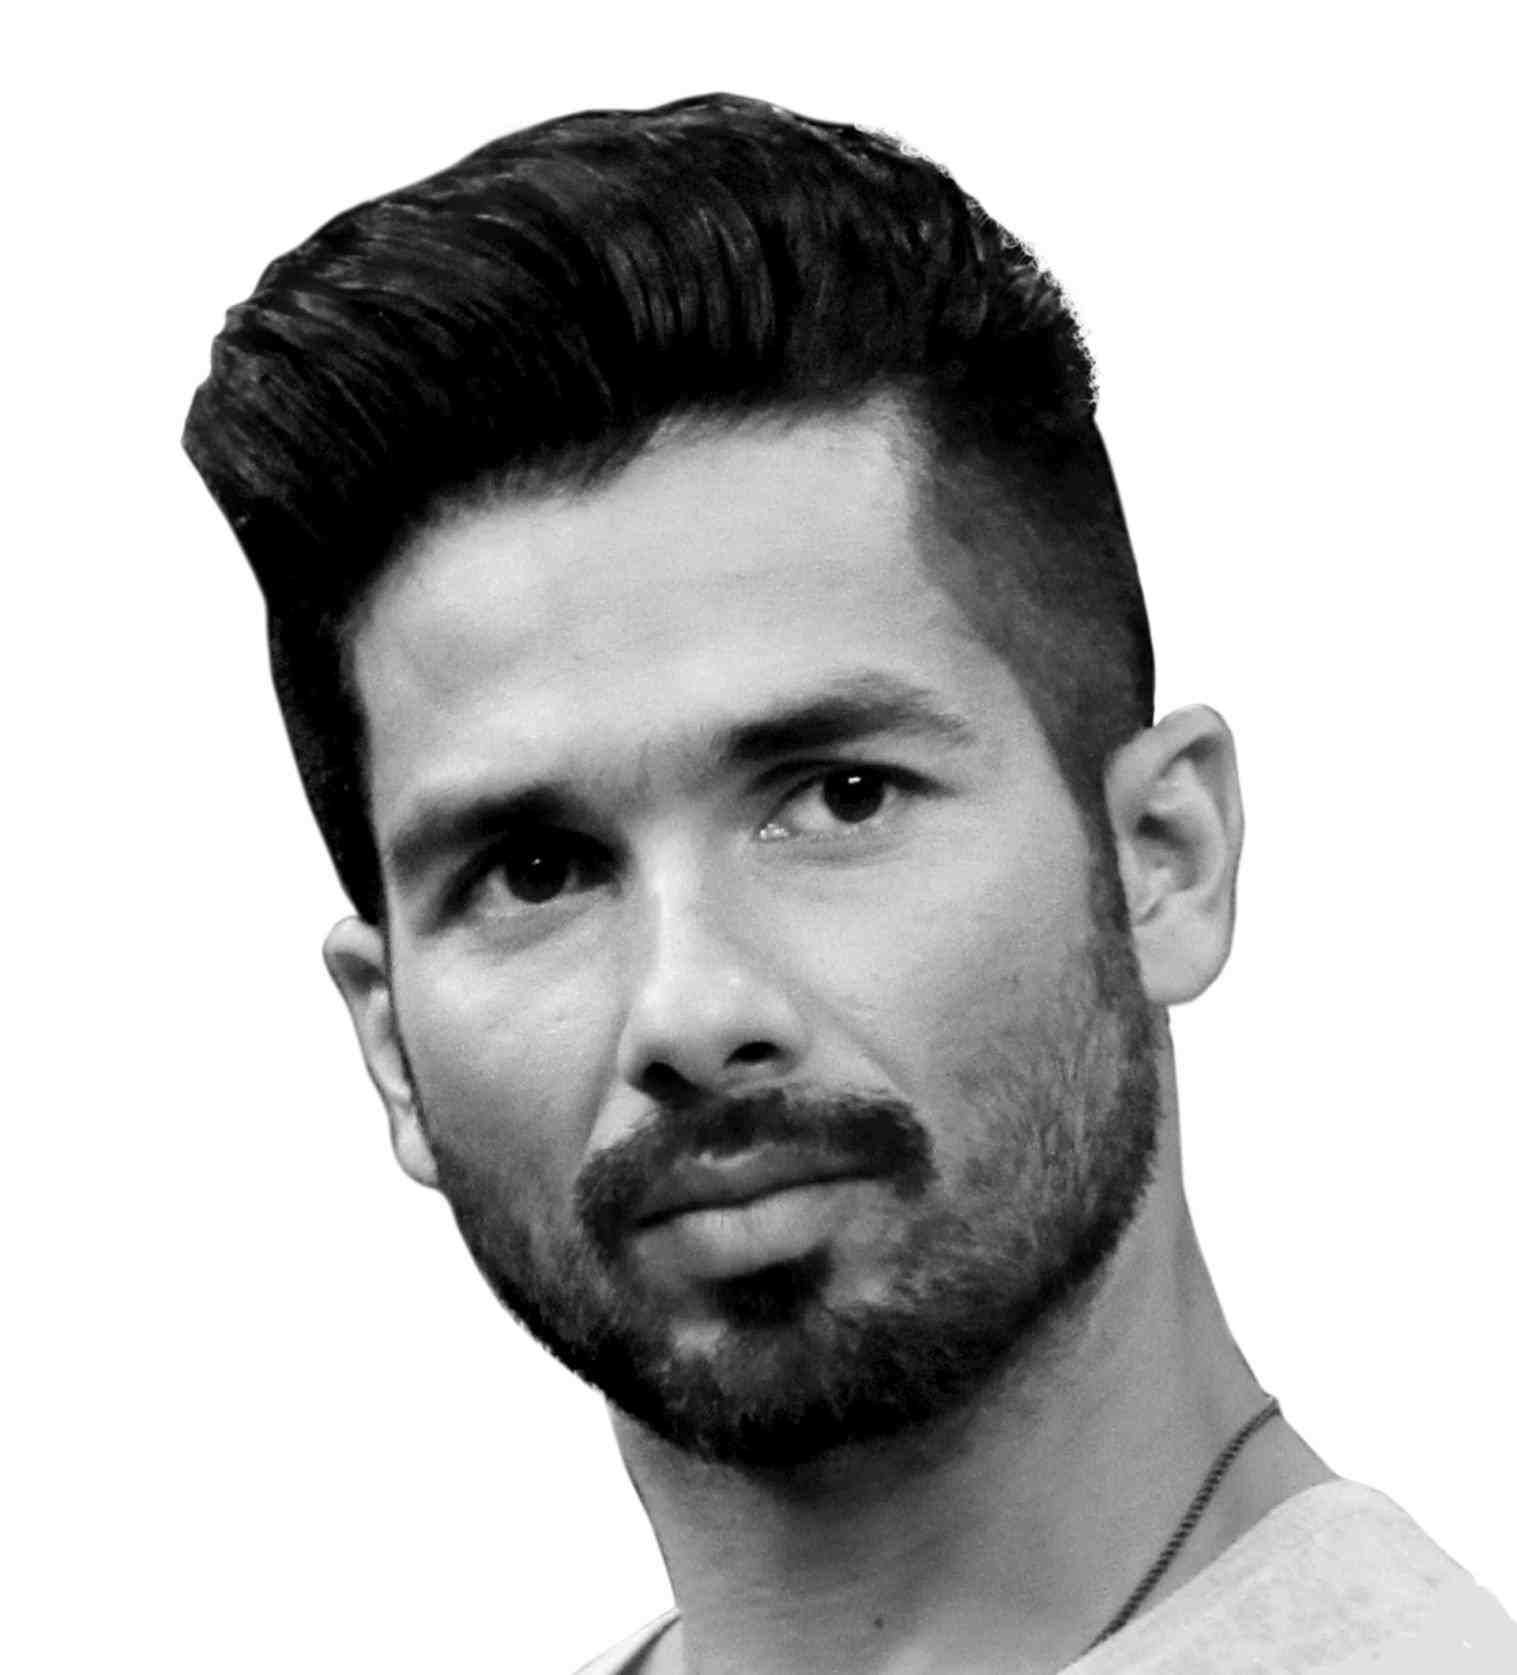 New Hairstyles For Men 2017 Normal Hair Stylist And Models Hair